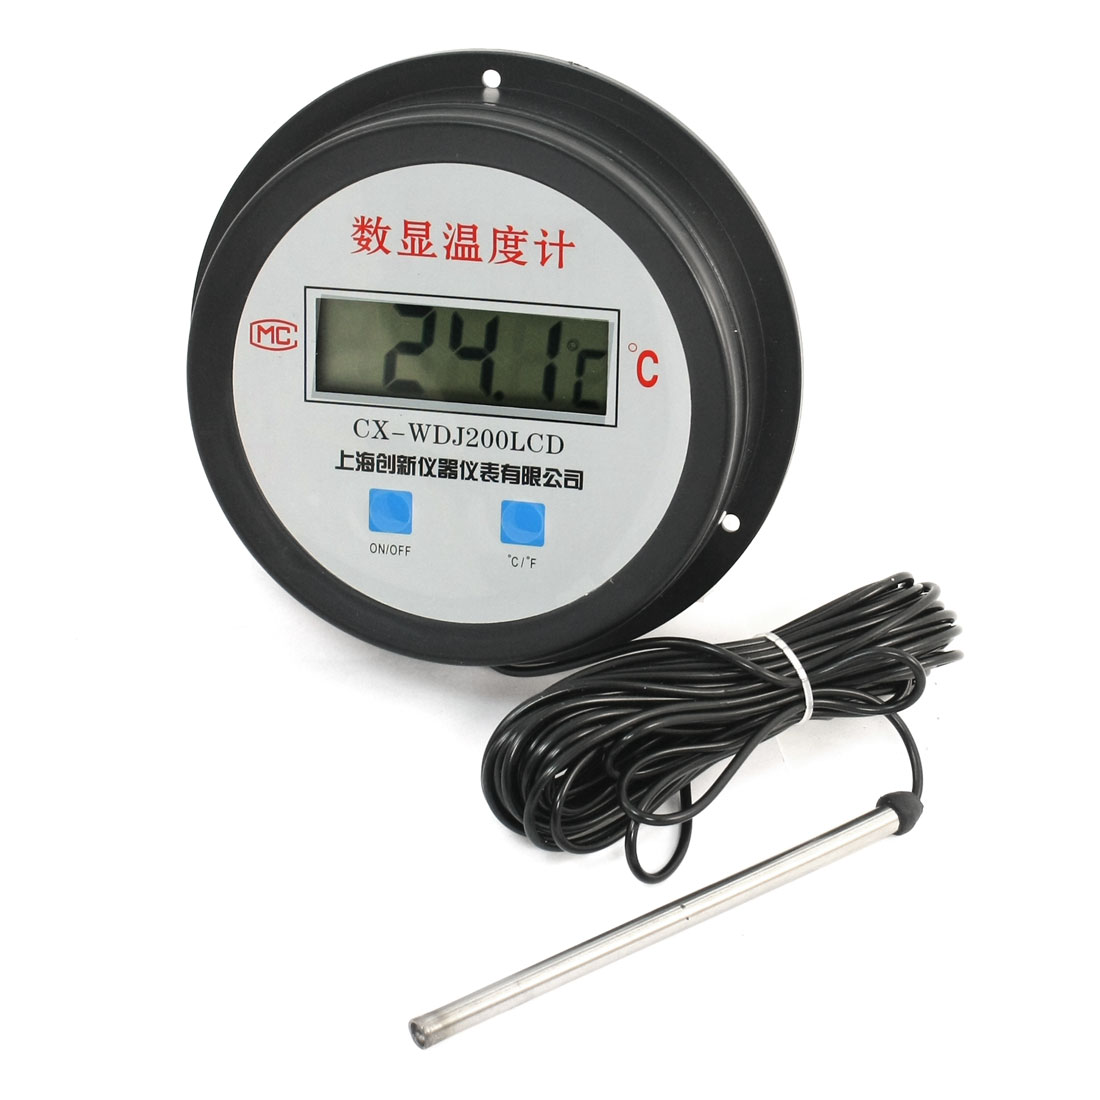 LCD Display -50-200C Temperature Measurement Probe Digital Thermometer